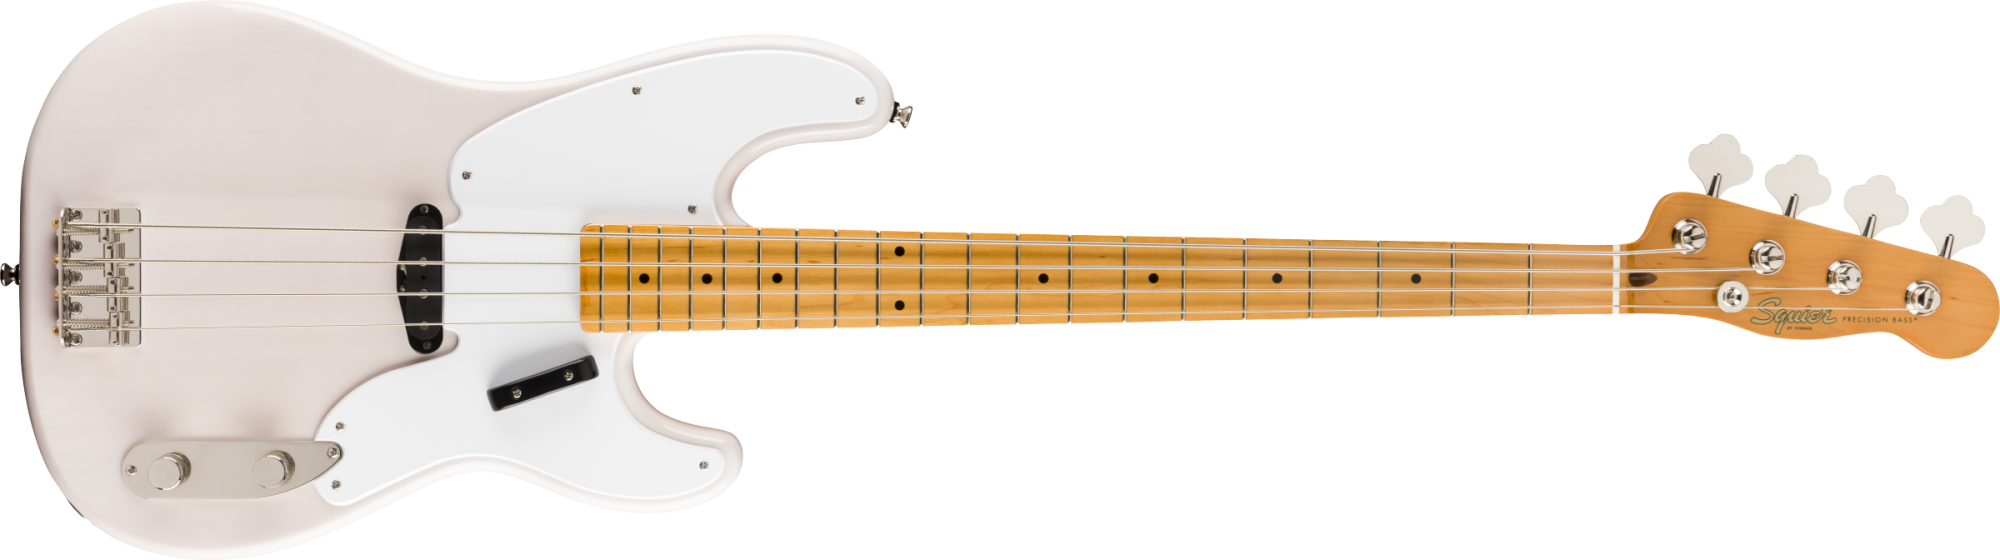 Fender Squire Classic Vibe 50s Precision Bass White Blond finish